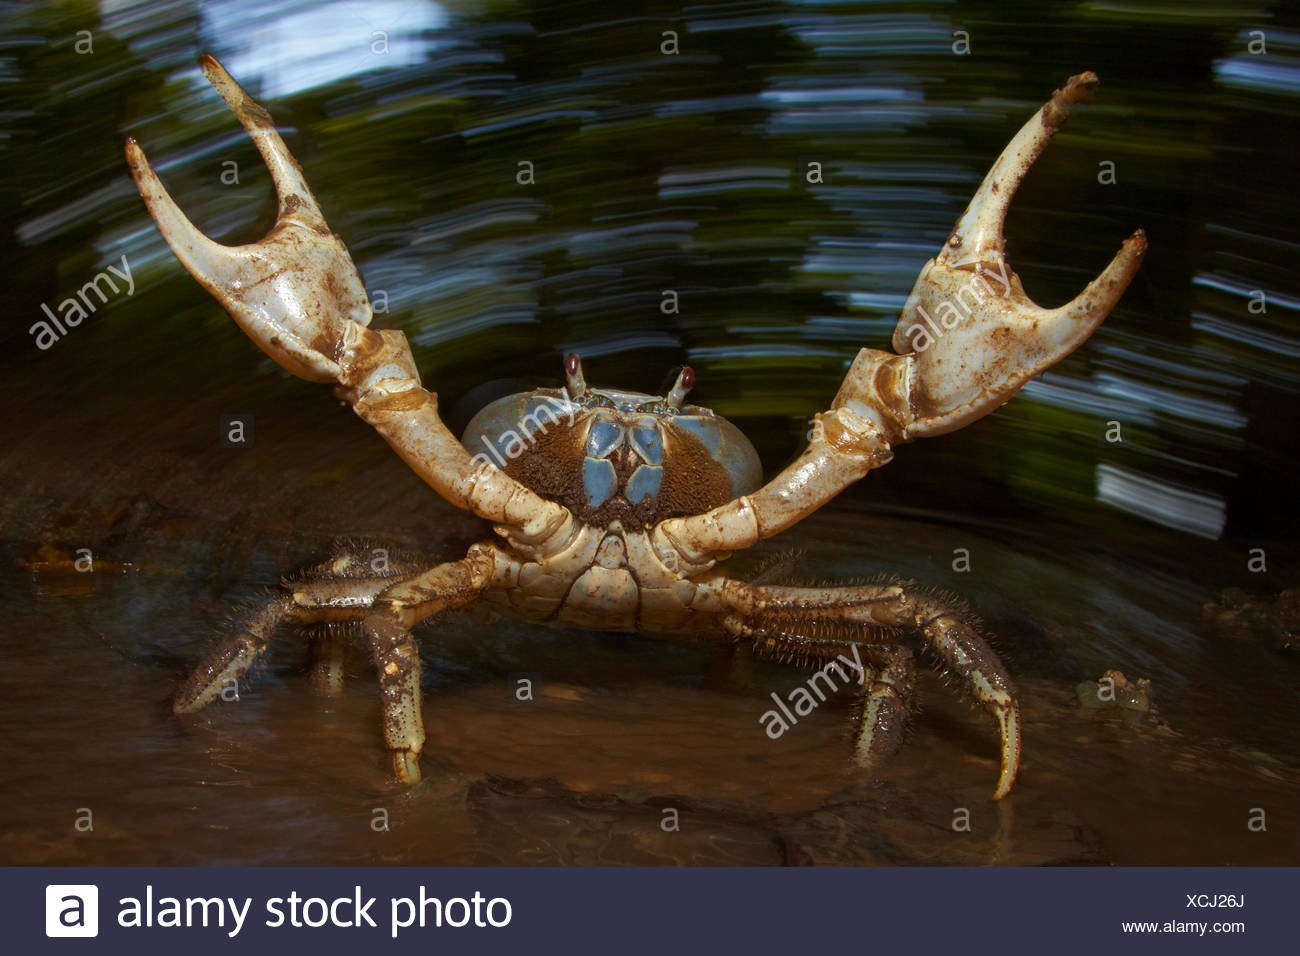 Blue Crab (Discoplax hirtipes) with claws raised in defensive / aggressive posture, endemic to Christmas Island, Indian Ocean, Australian Territory - Stock Image